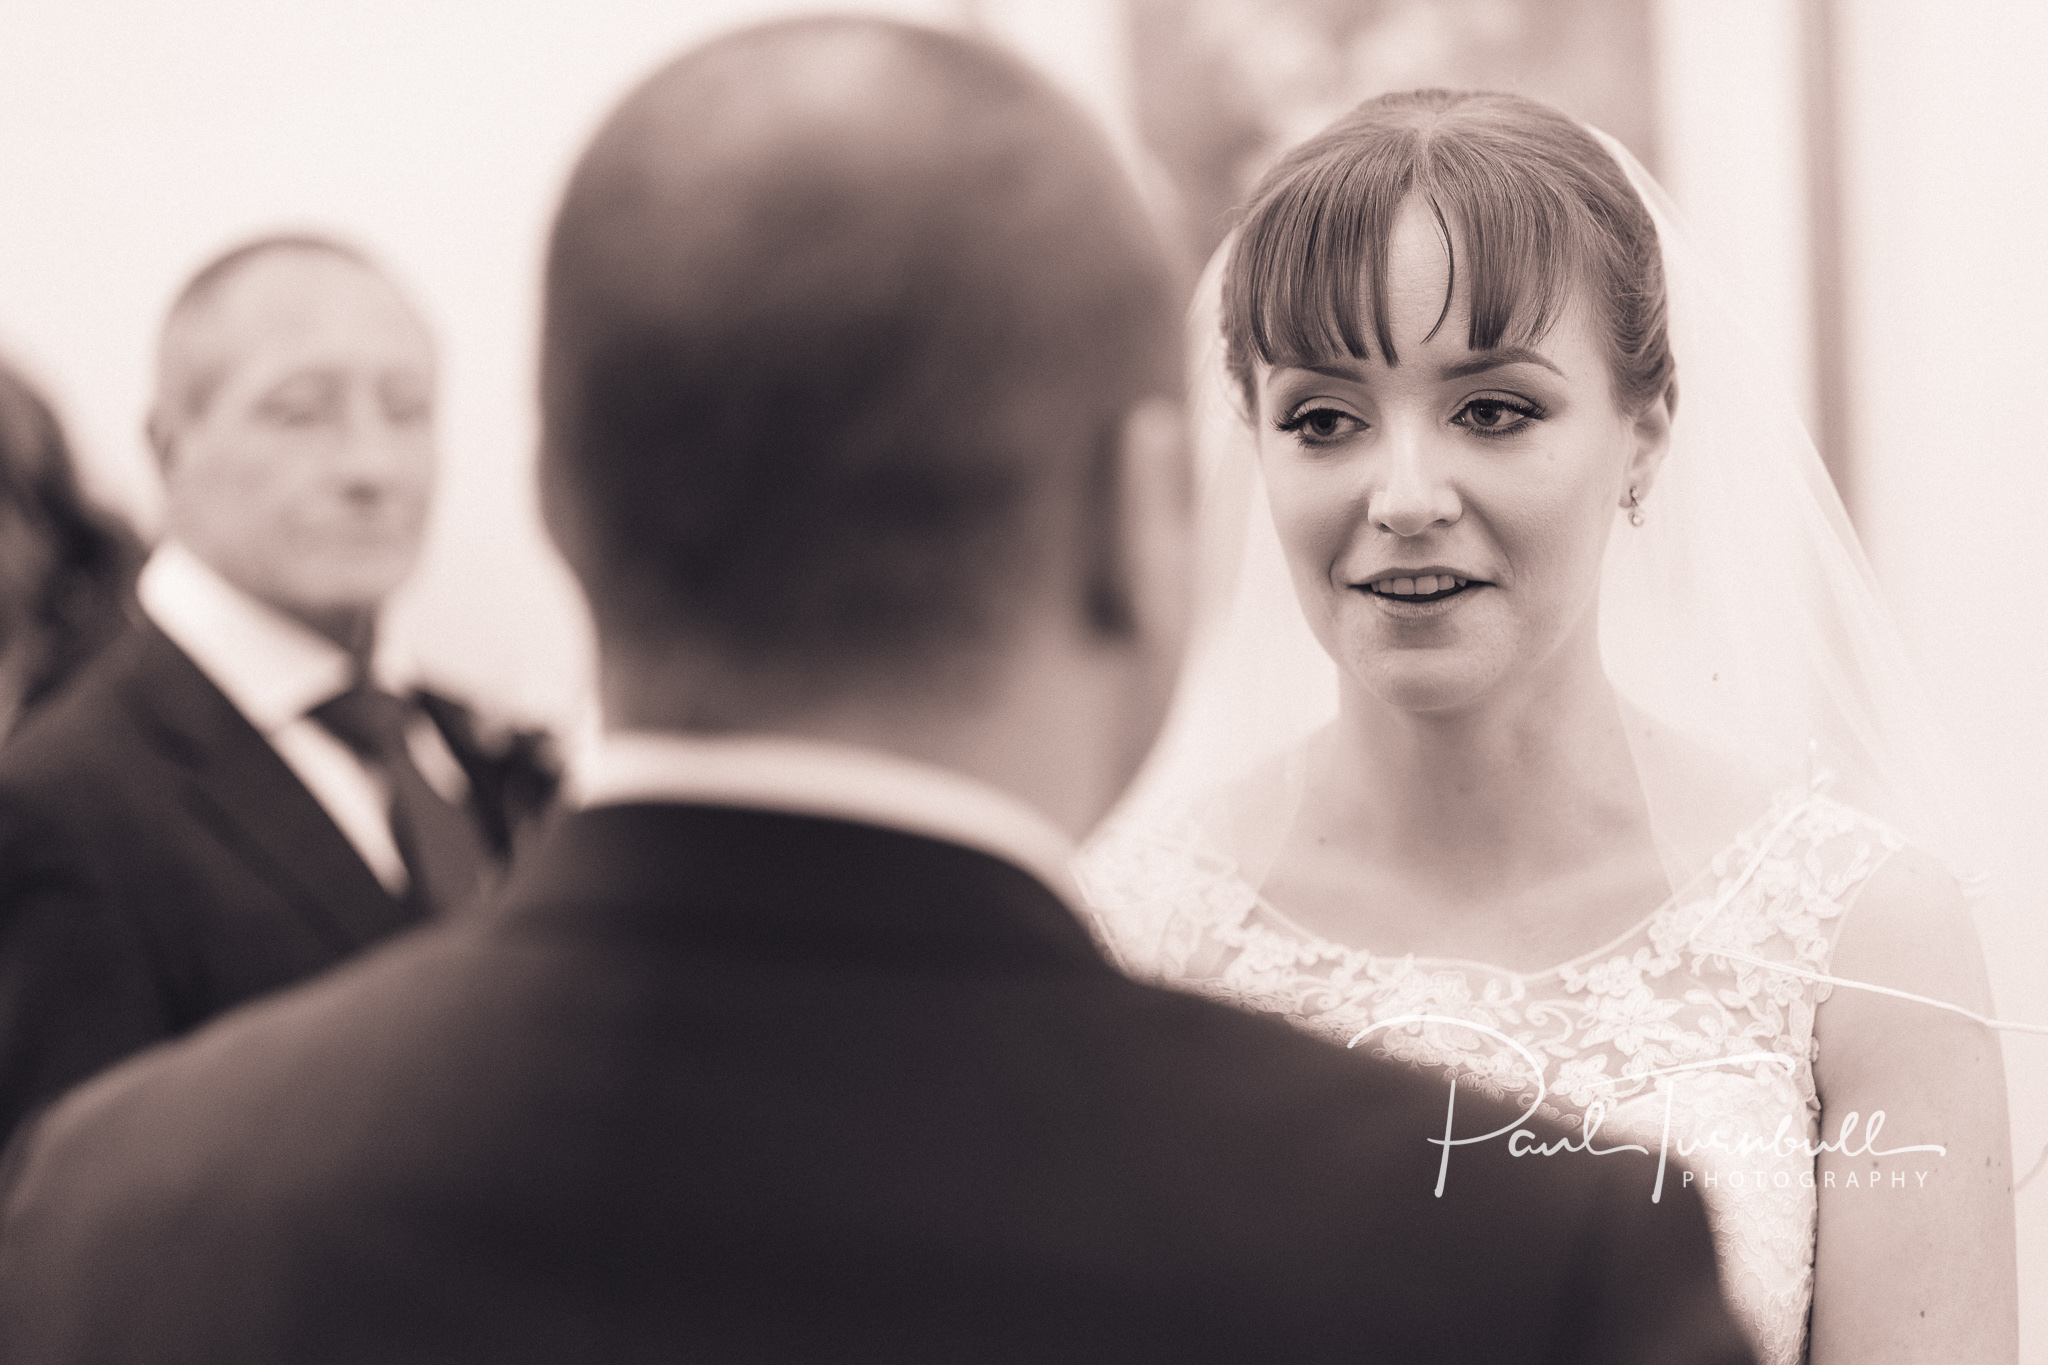 wedding-photographer-pontefract-yorkshire-laura-keanu-035.jpg